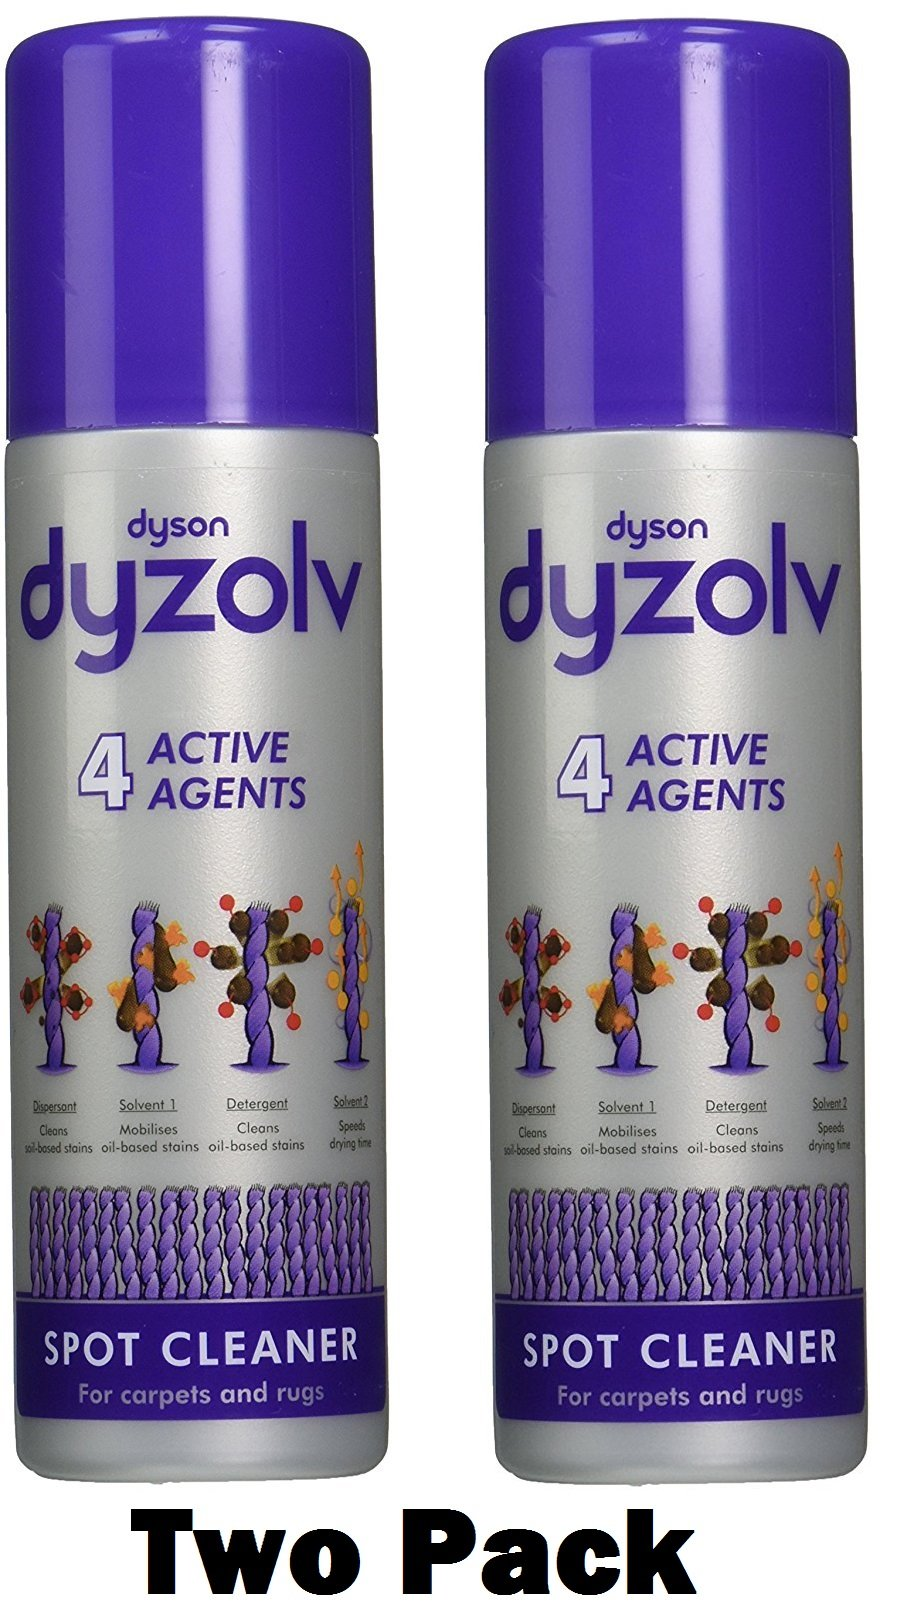 Dyson Dyzolv, Stain and Spot Remover 8.5Oz Spray (Two Pack)